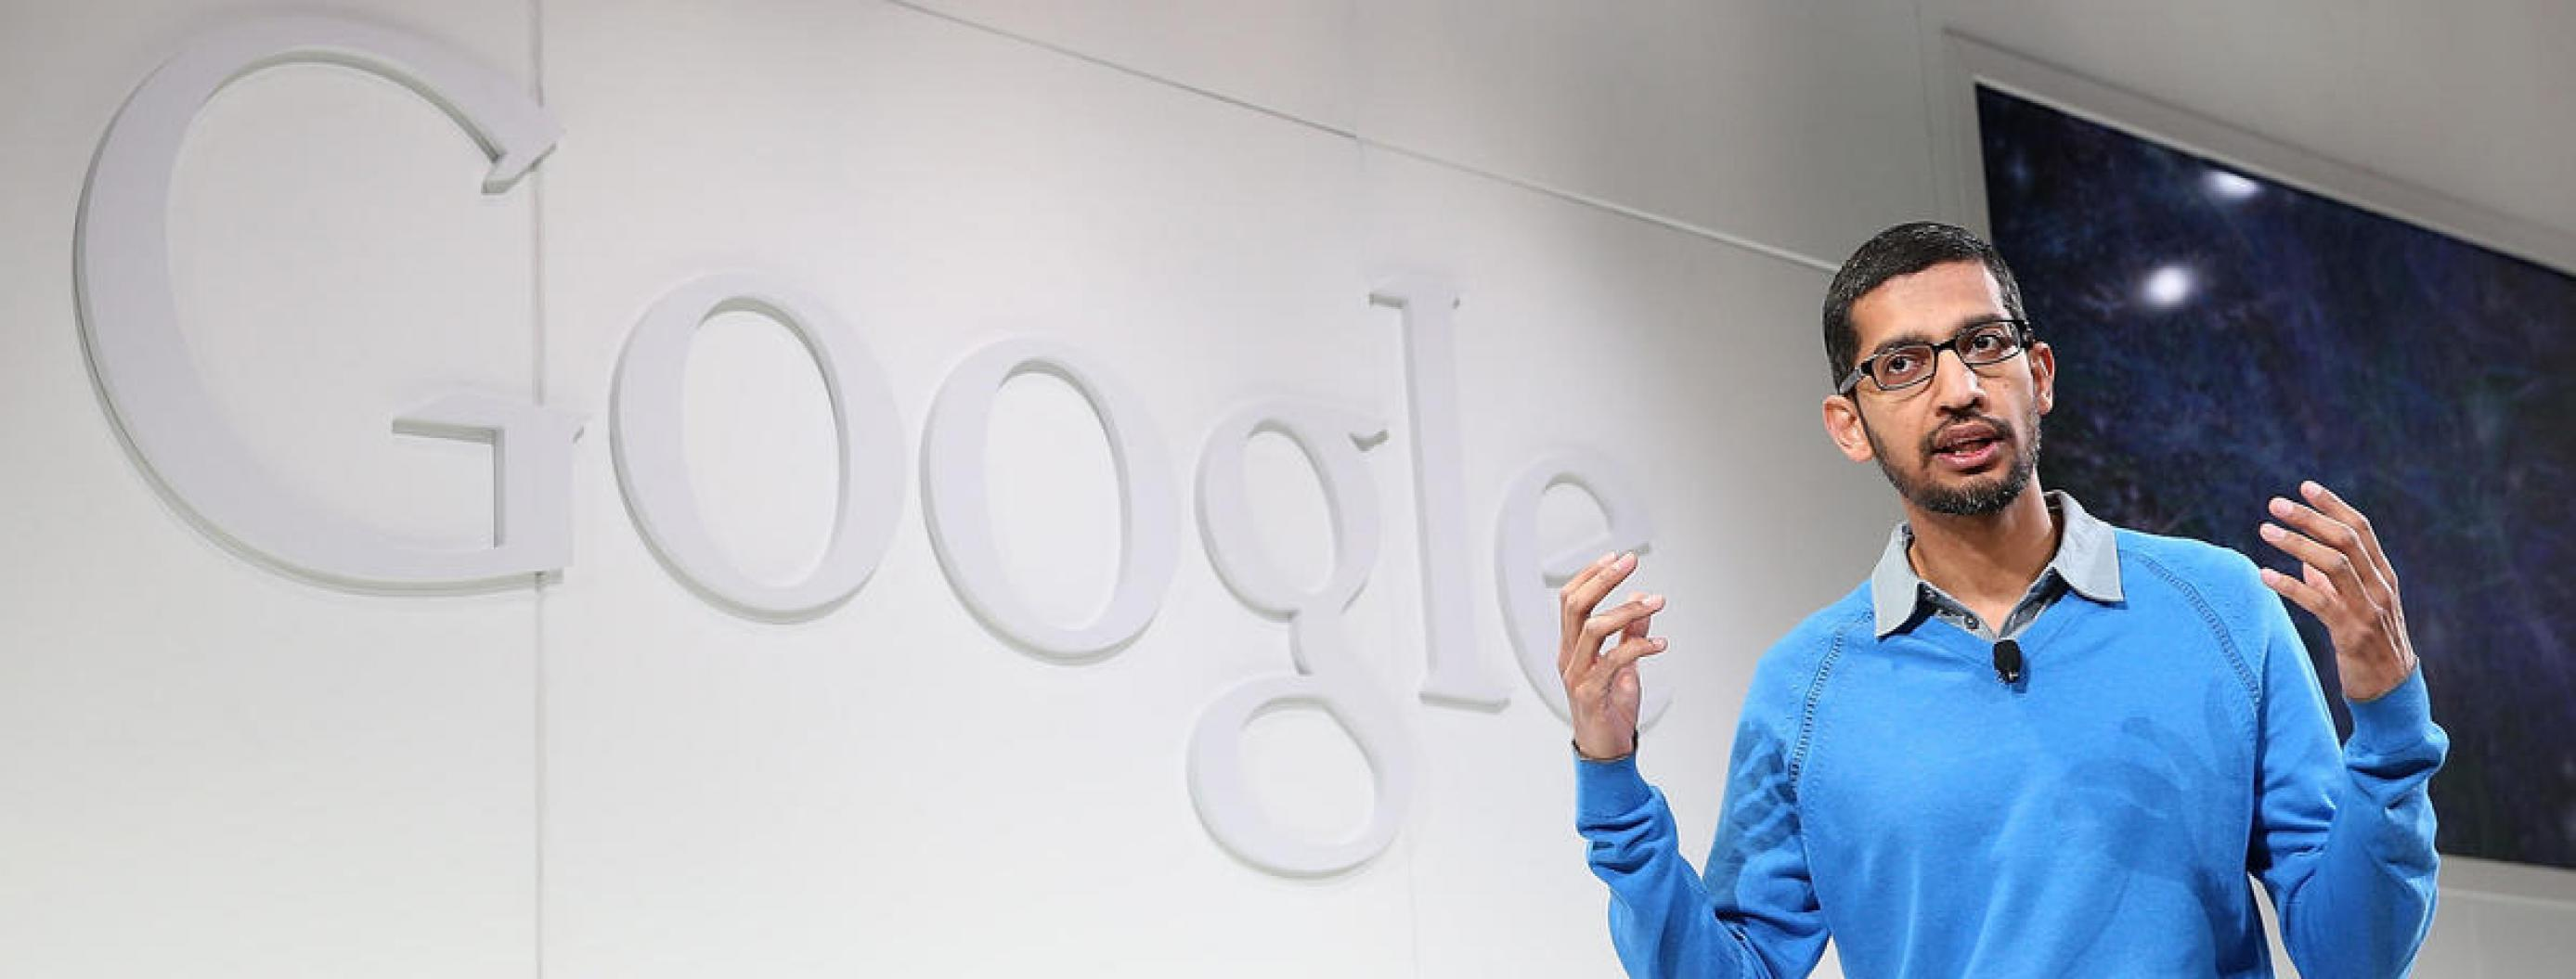 Google Could Soon Become a $1 Trillion Company